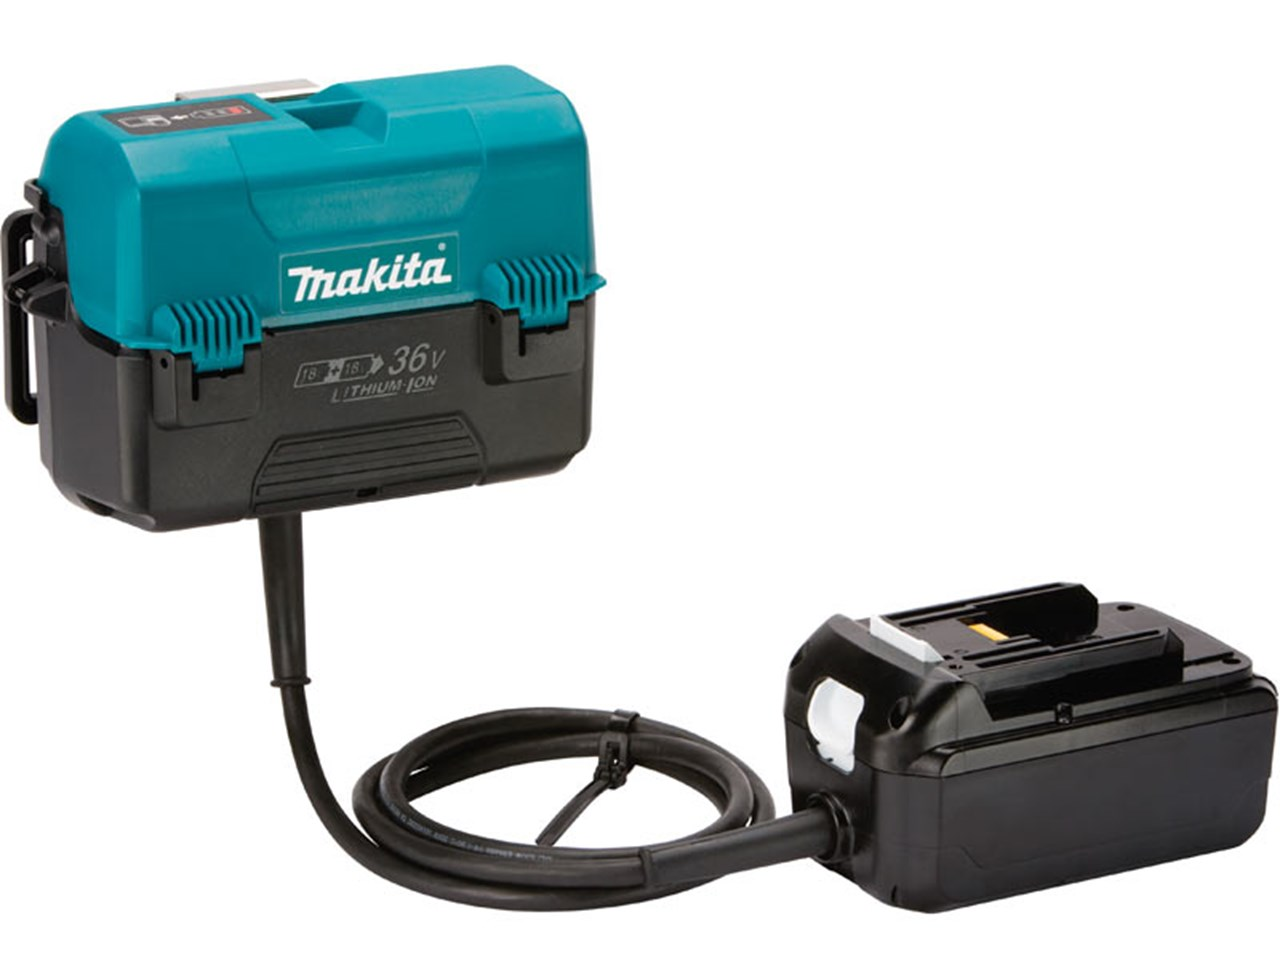 Makita bcv01 18v to 36v battery converter set - Batterie makita 18v ...